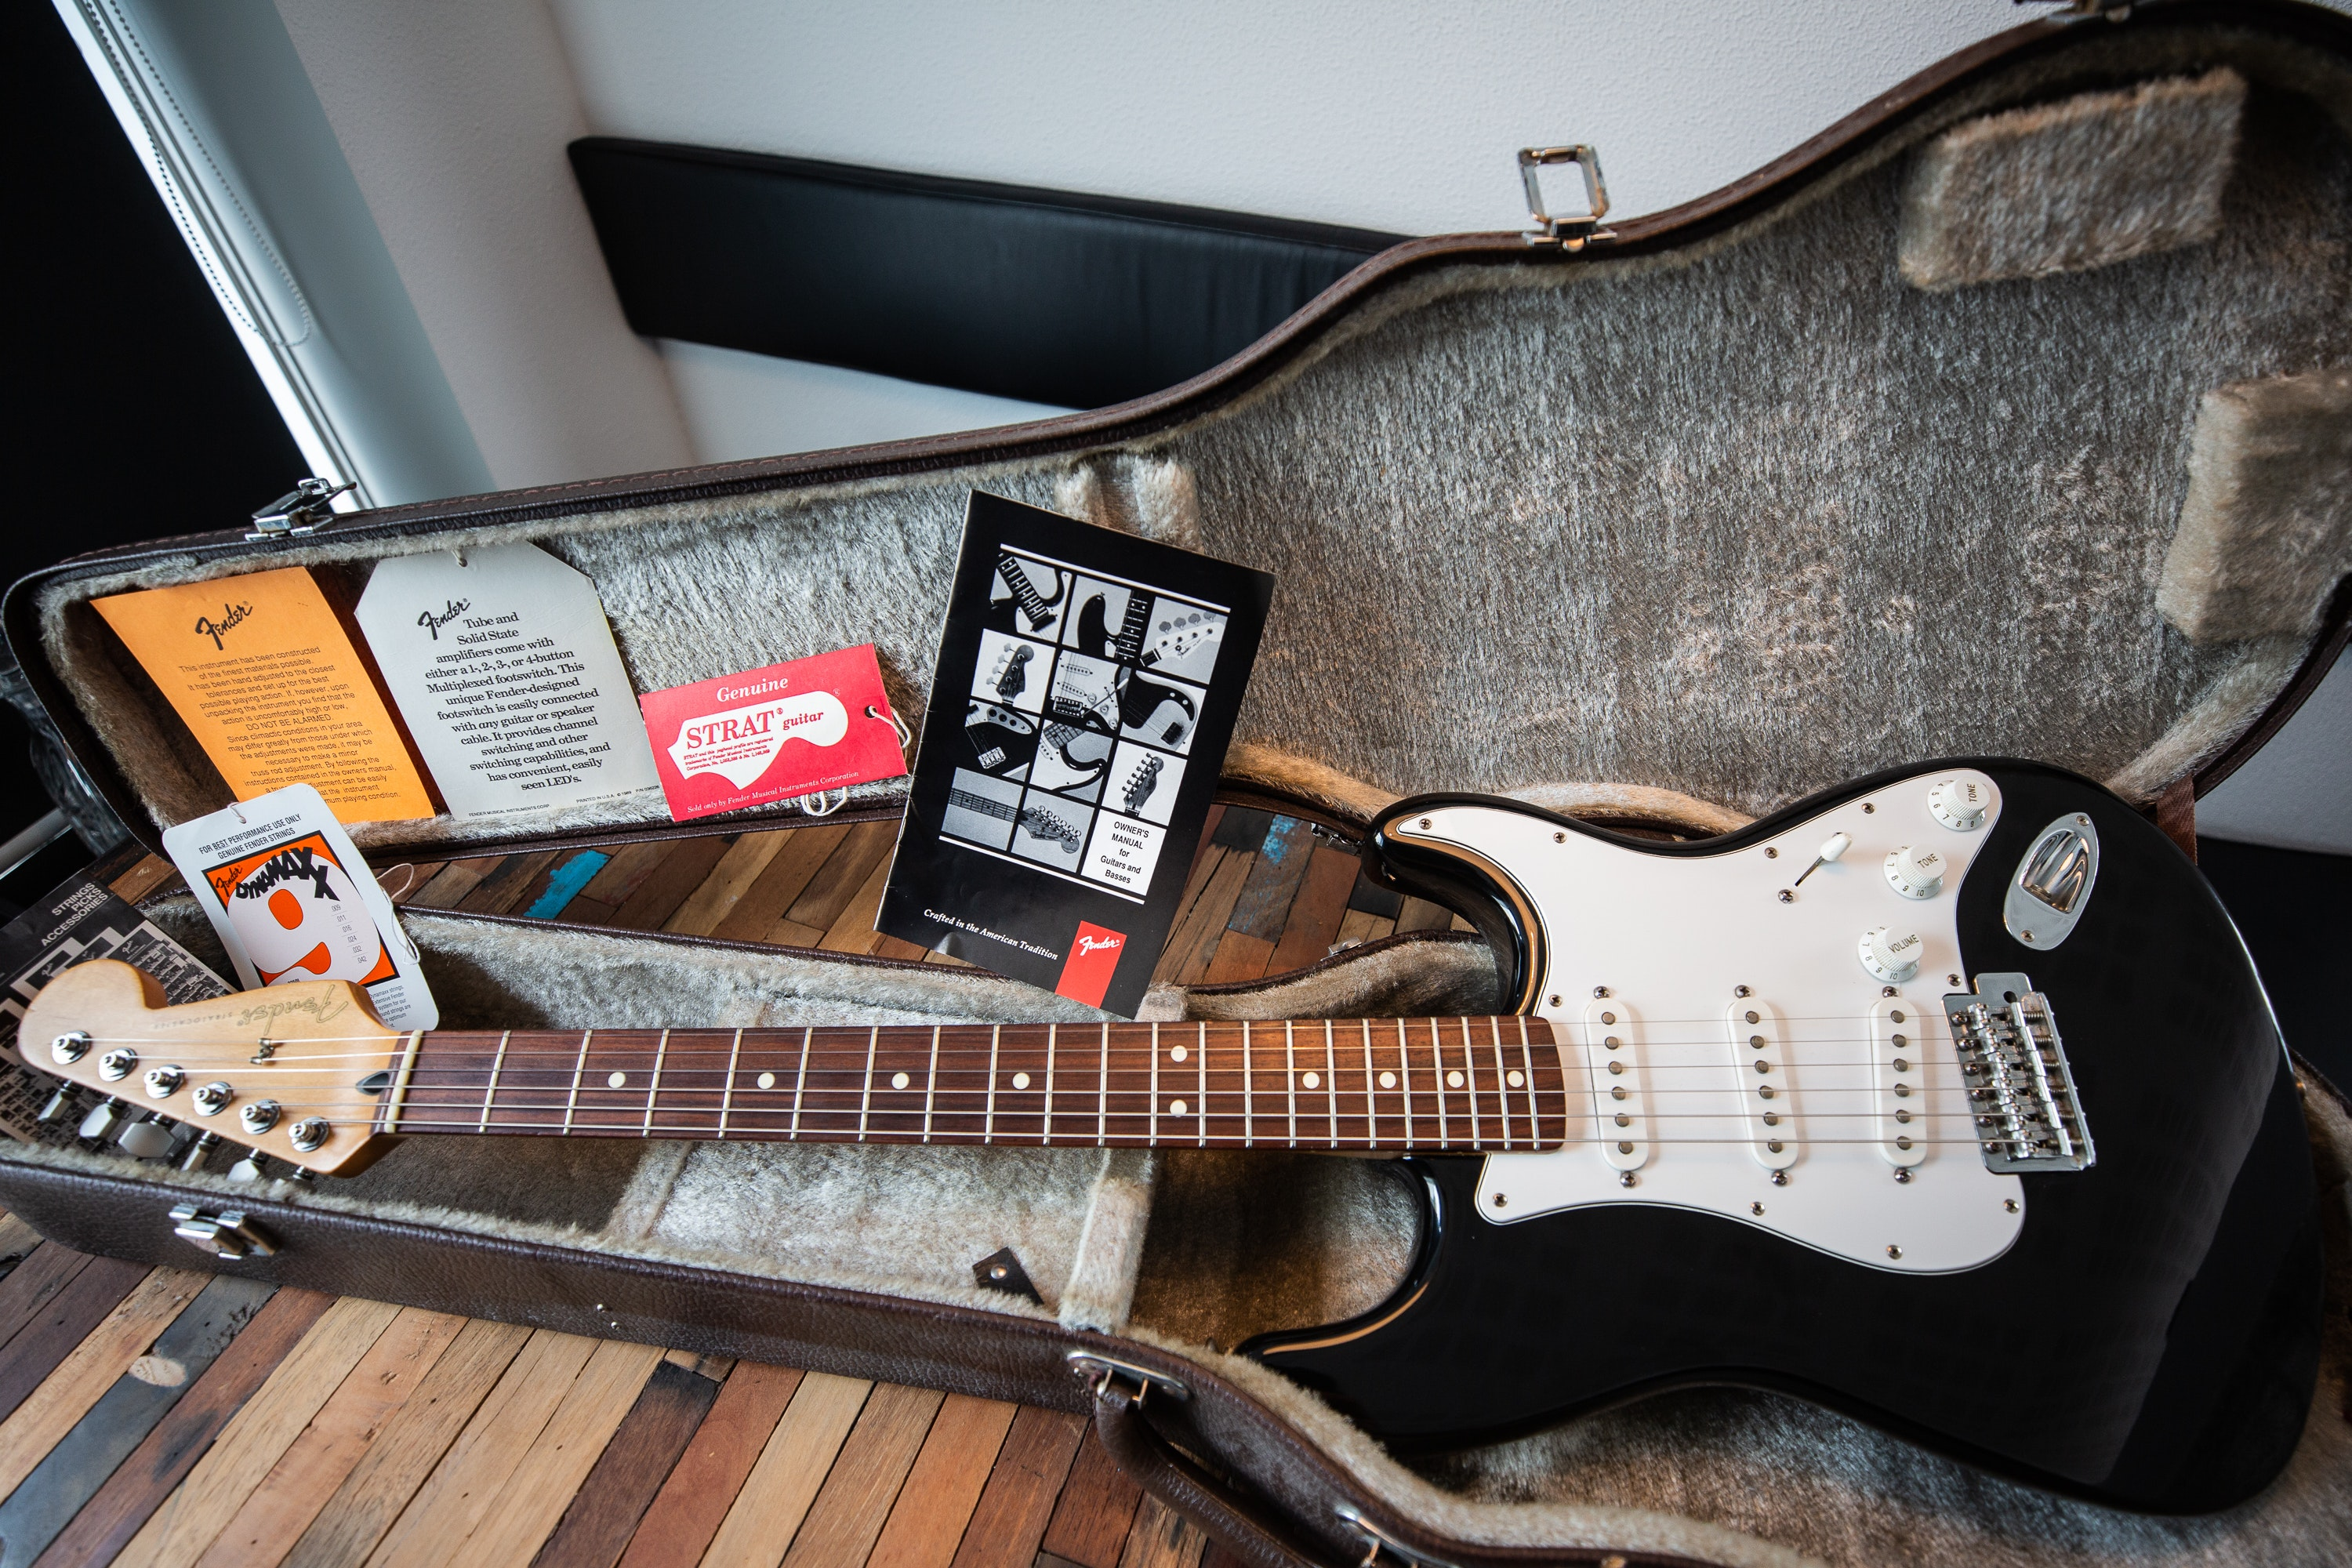 An in-depth review of the best guitar cases available in 2019.